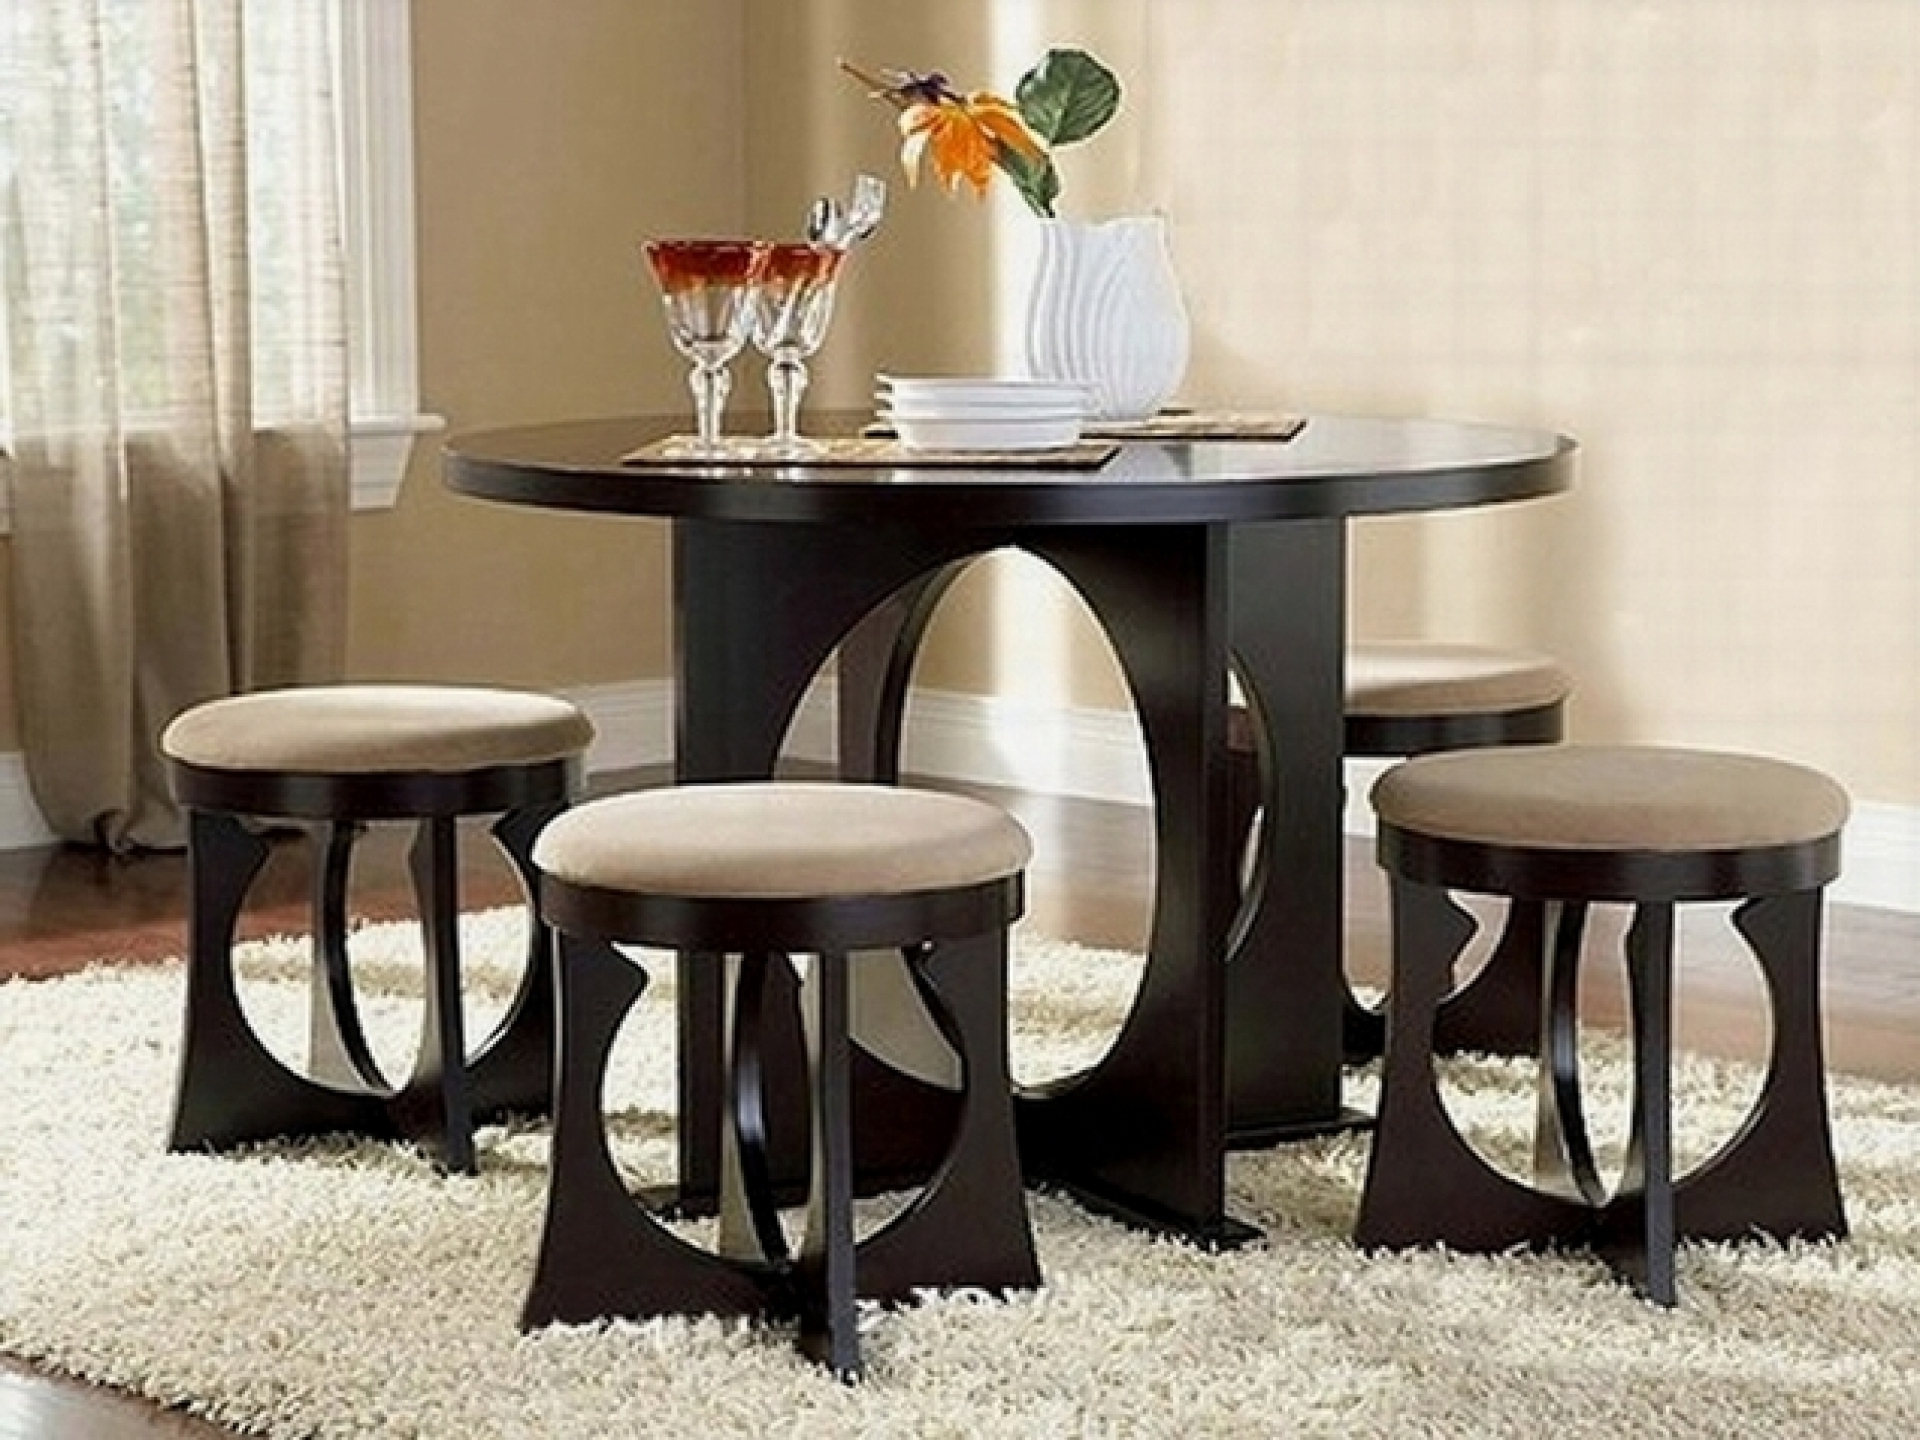 Widely Used Dining Room Dining Sets For Small Rooms Compact Dining Table Chairs In Small Dining Tables And Chairs (View 10 of 25)